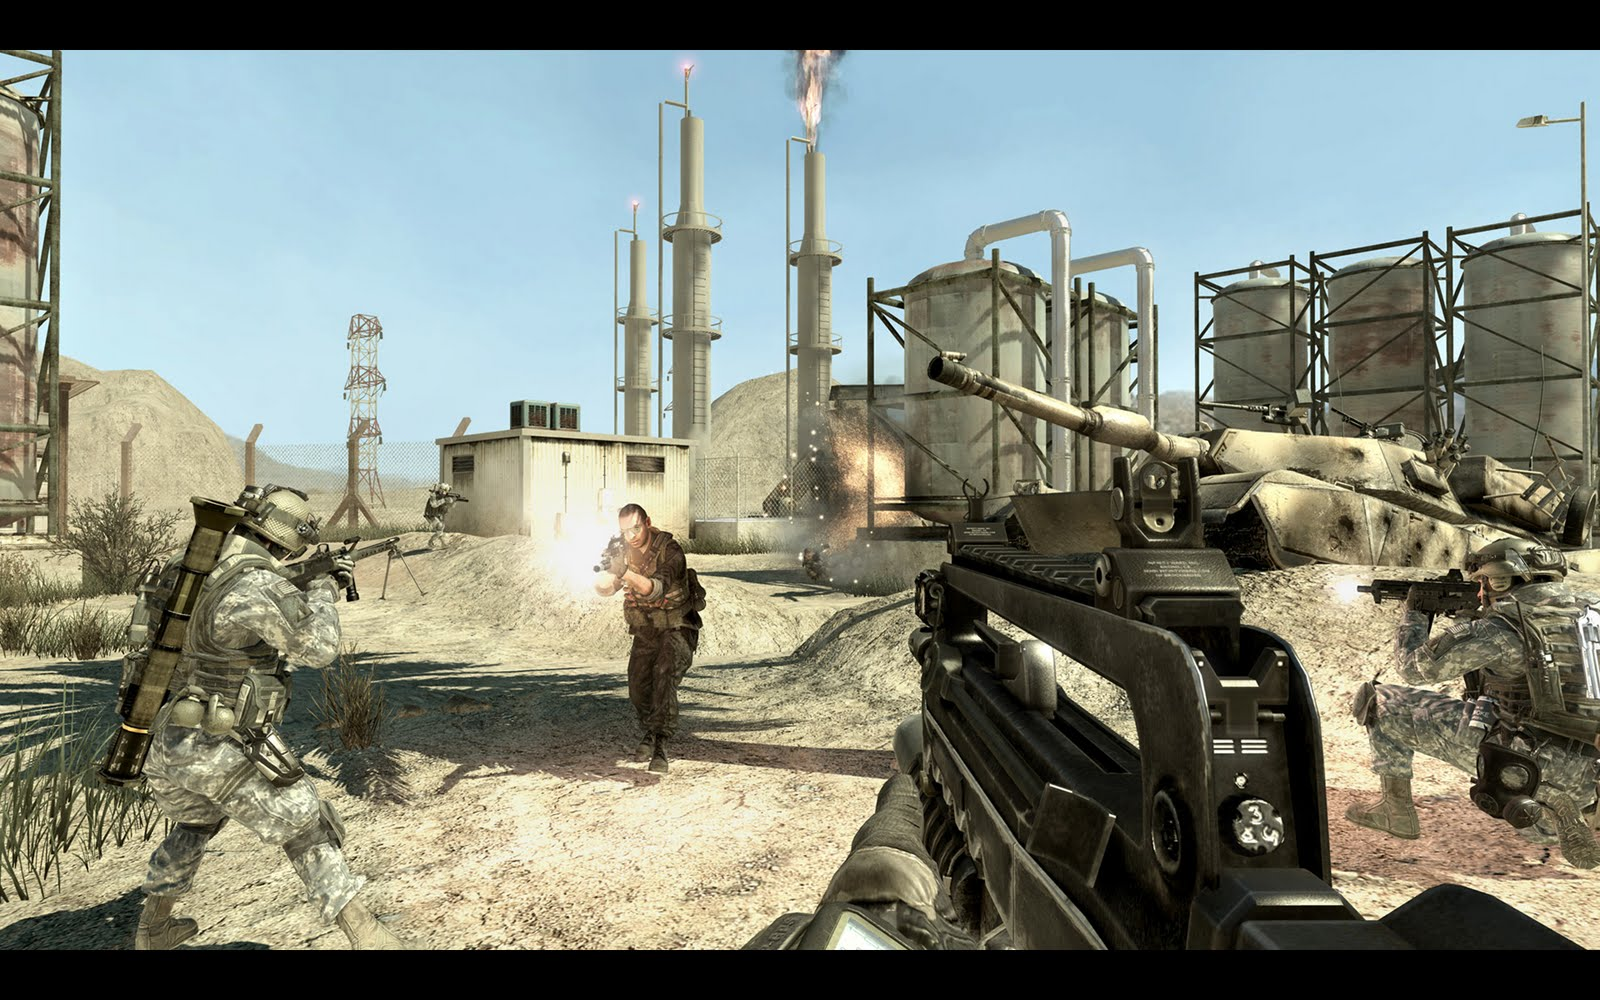 call of duty modern warfare 3 Full Version Free Download ...